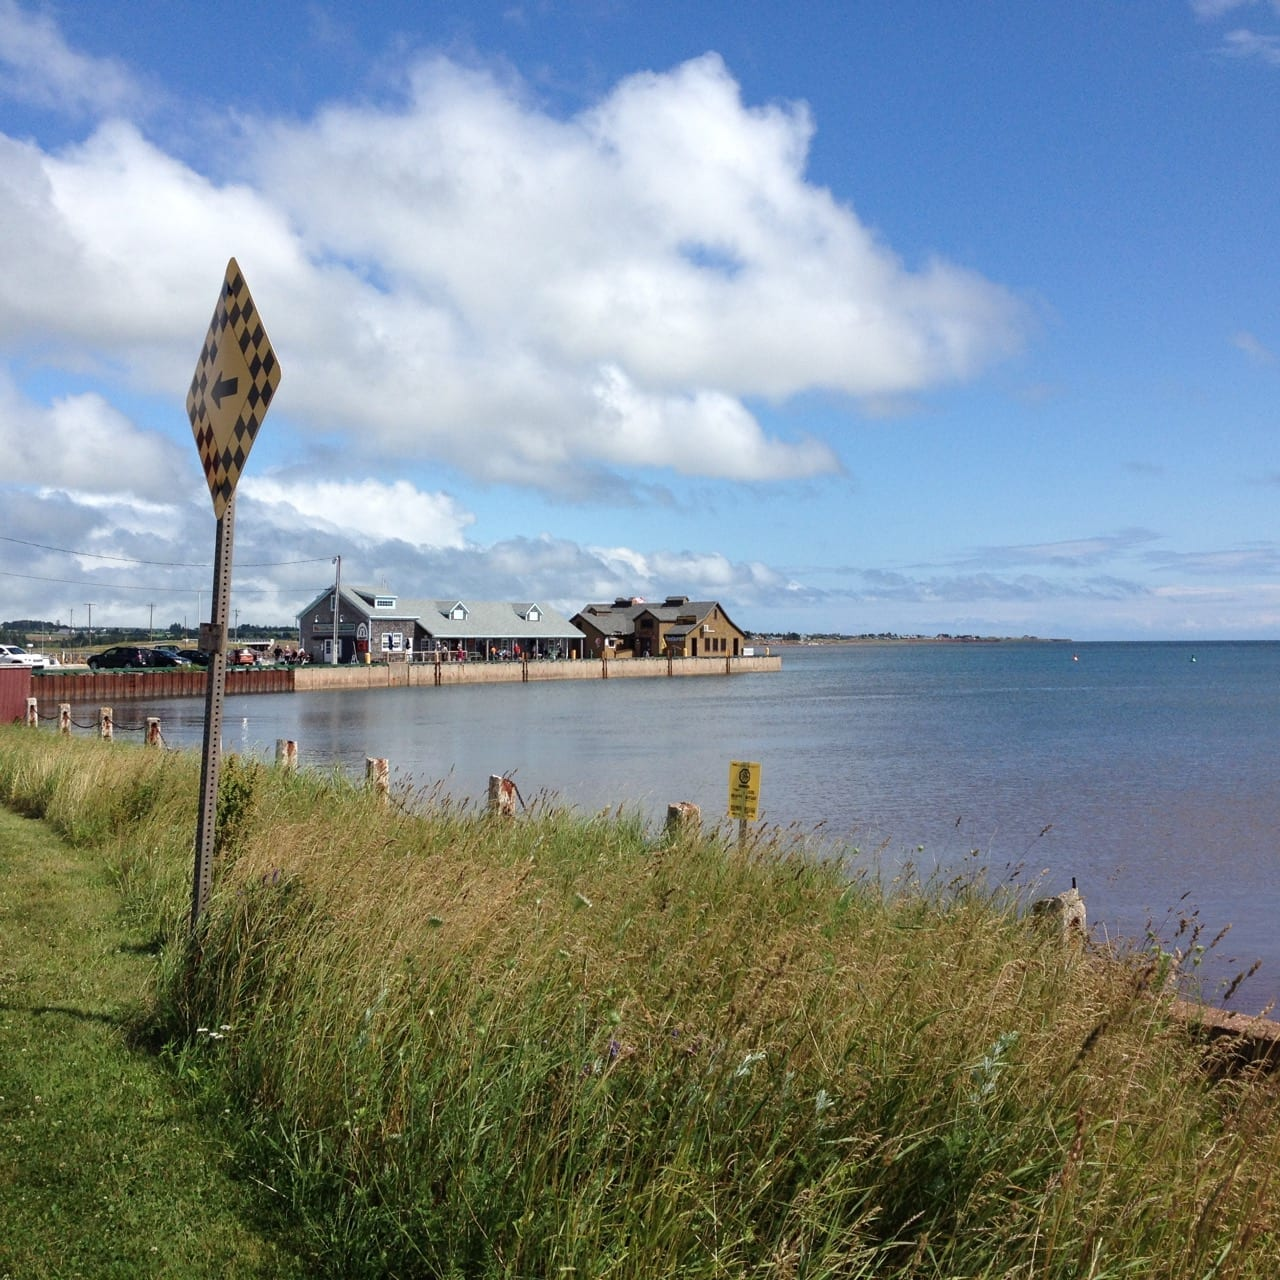 Prince Edward Island Beaches: Coastal Erosion Due To Sea Level Rise In Prince Edward